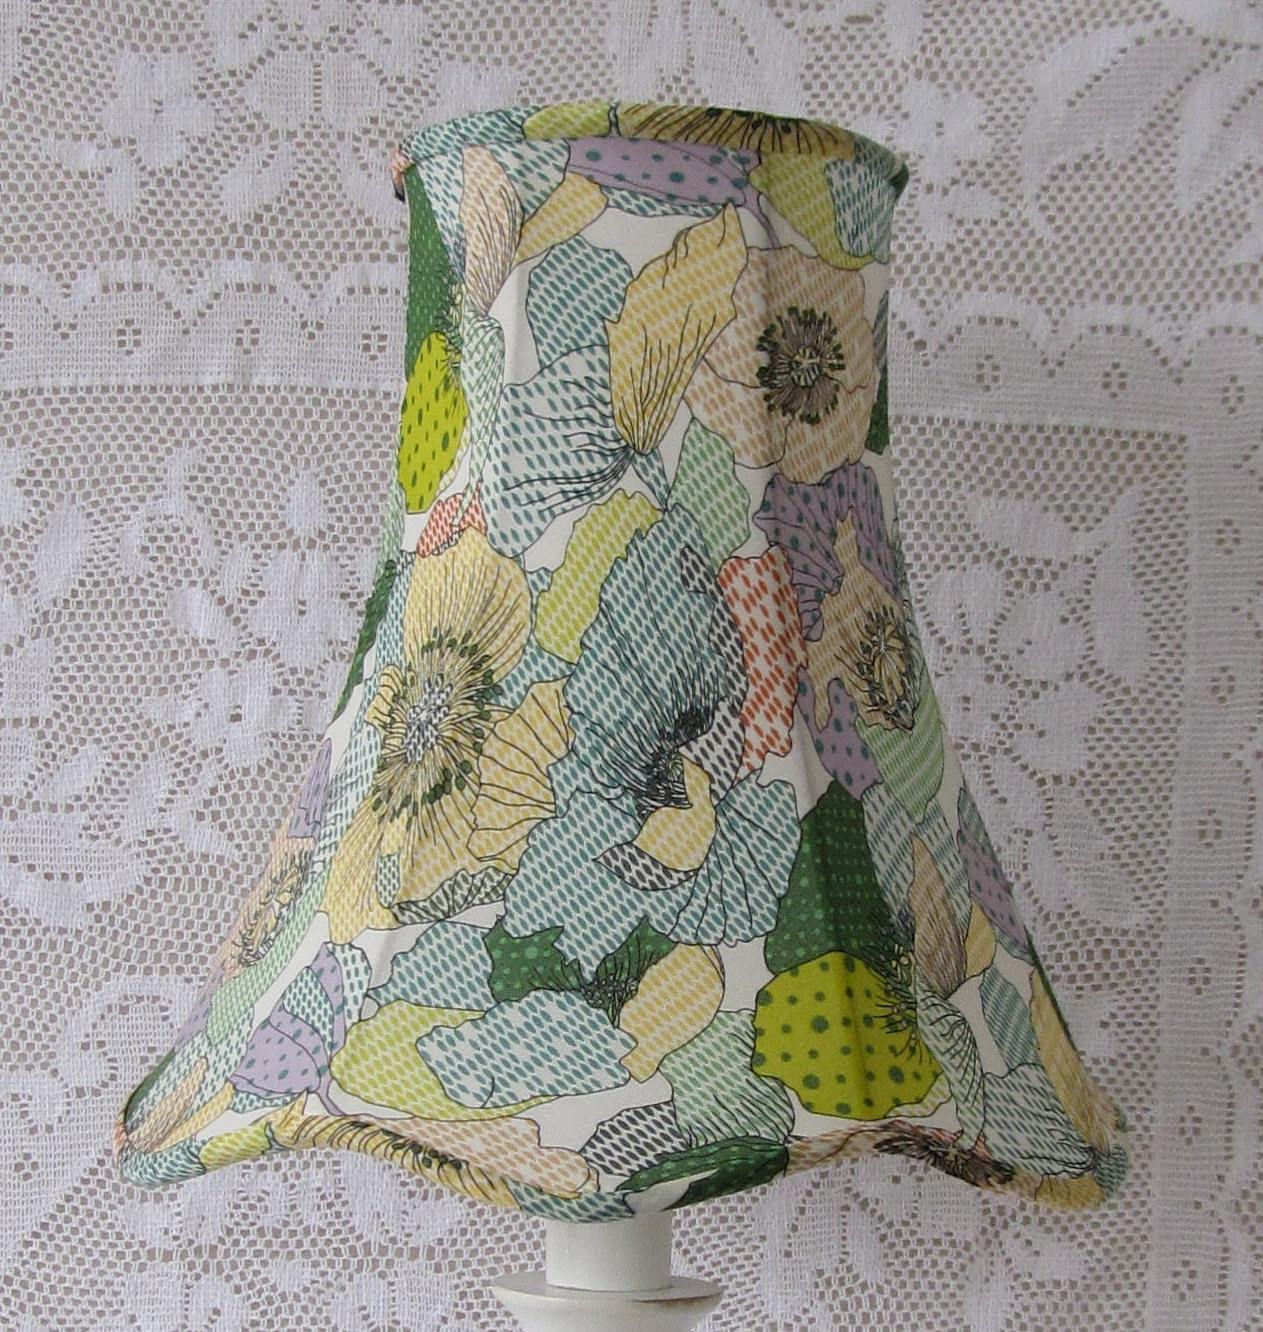 Small things simple pleasures how to recover a lampshade tutorial how to recover a lampshade tutorial aloadofball Choice Image